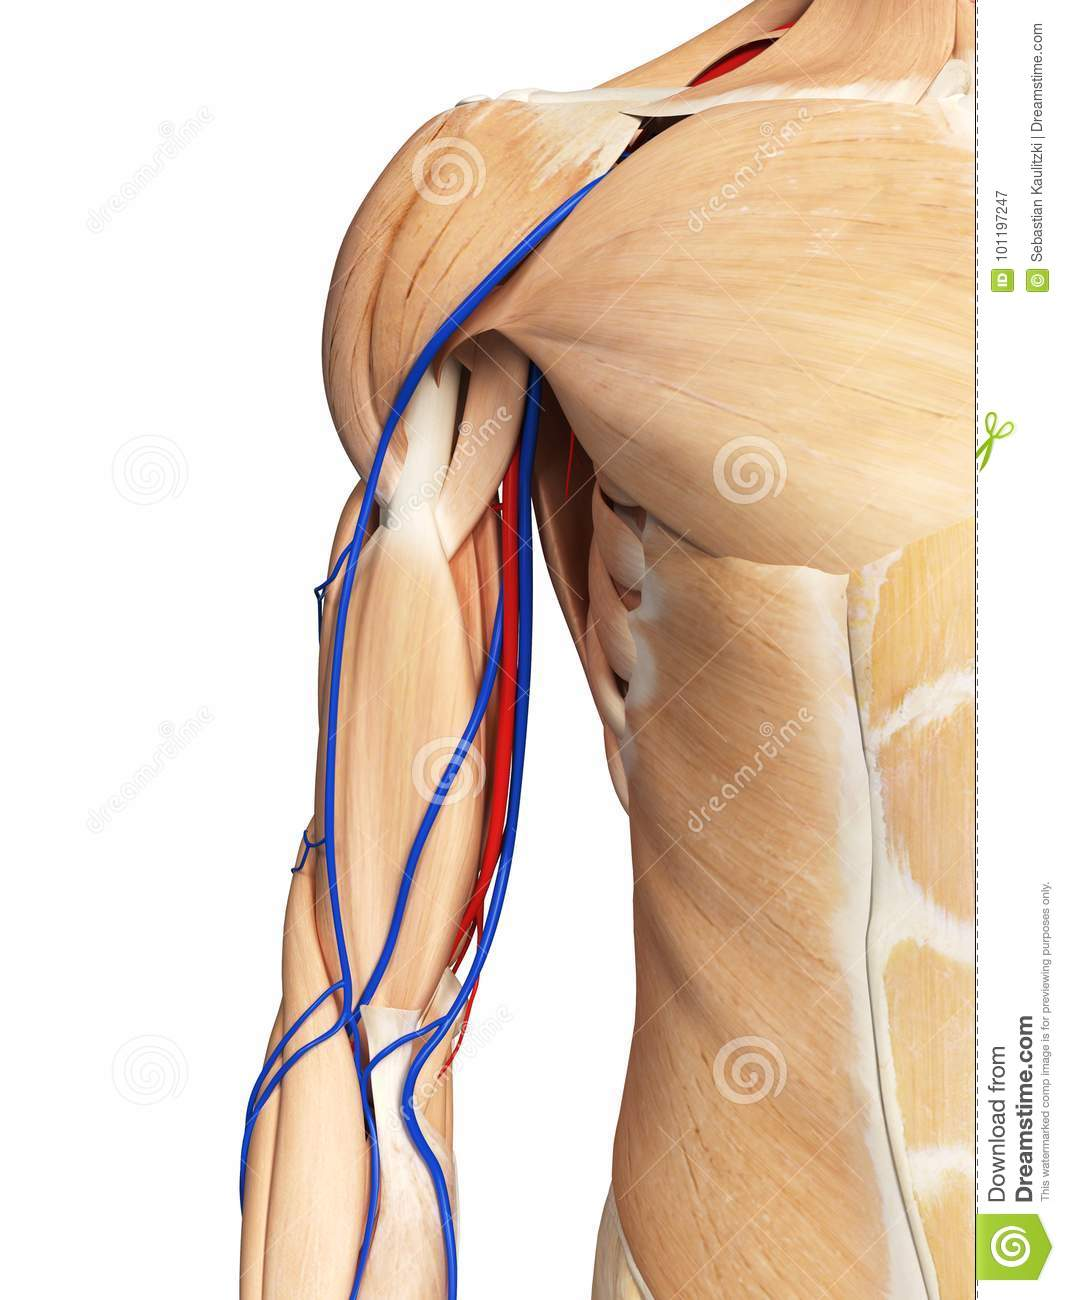 The Arm Anatomy Stock Illustration Illustration Of Vascular 101197247